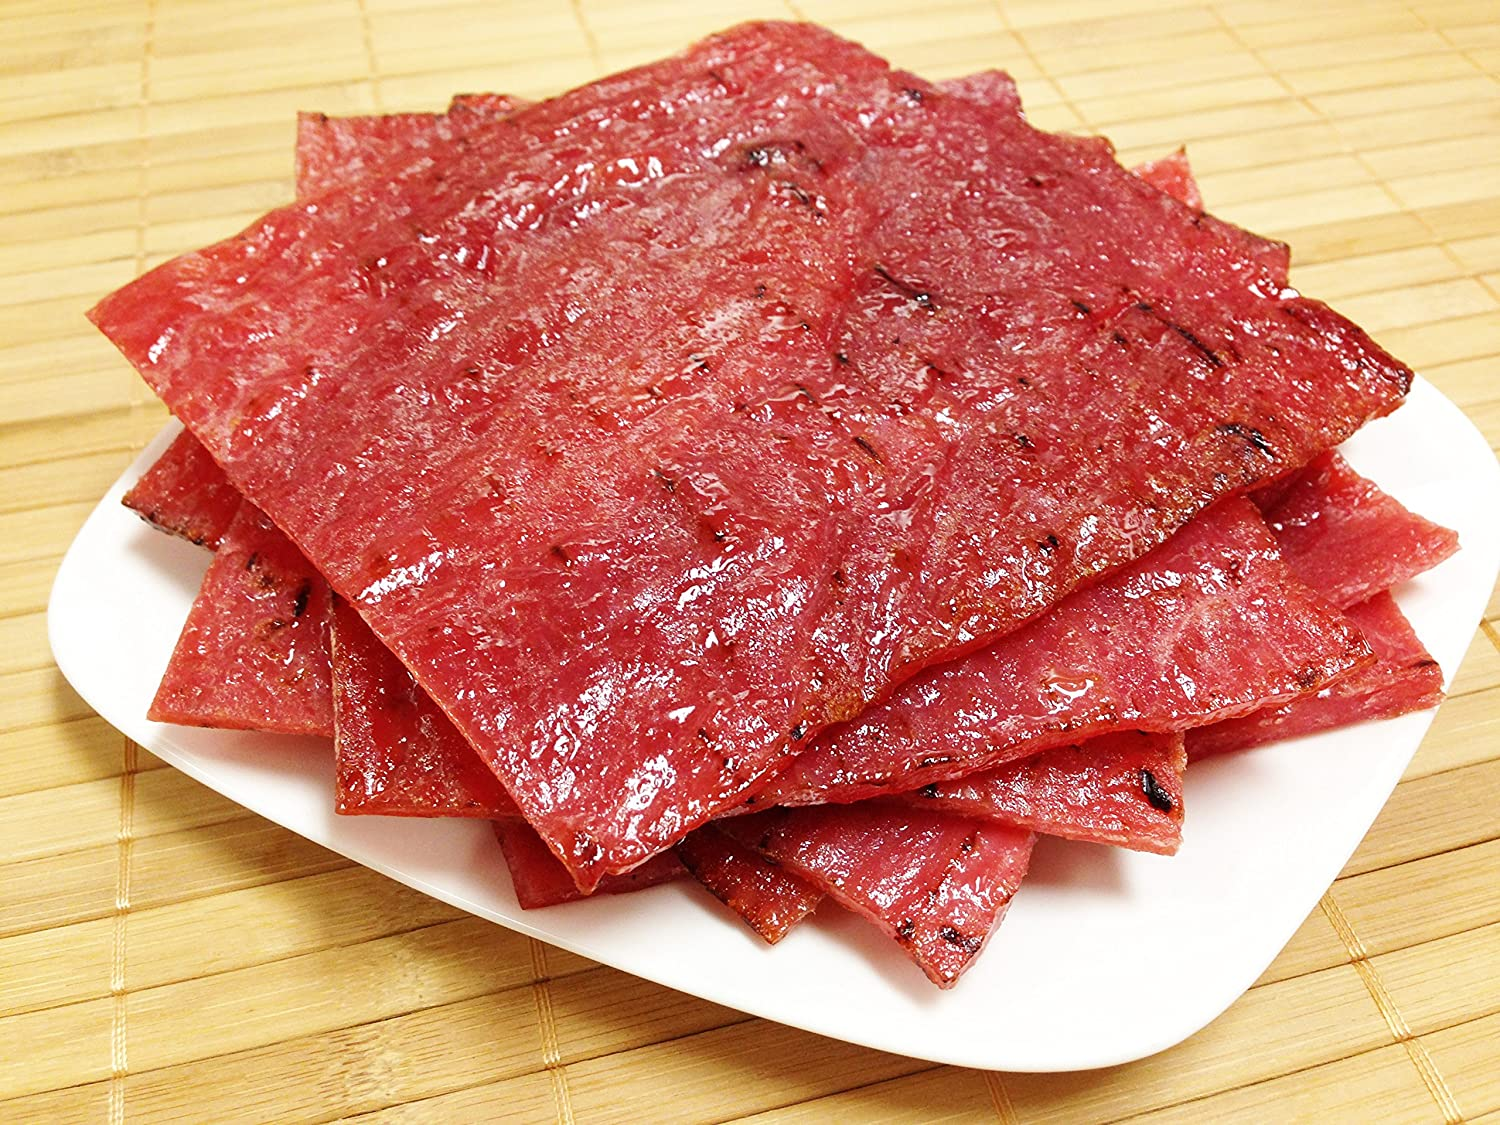 Made to Order Fire-Grilled Asian Pork Jerky (Original Flavor - 8 Ounce) aka Singapore Bak Kwa - Los Angeles Times